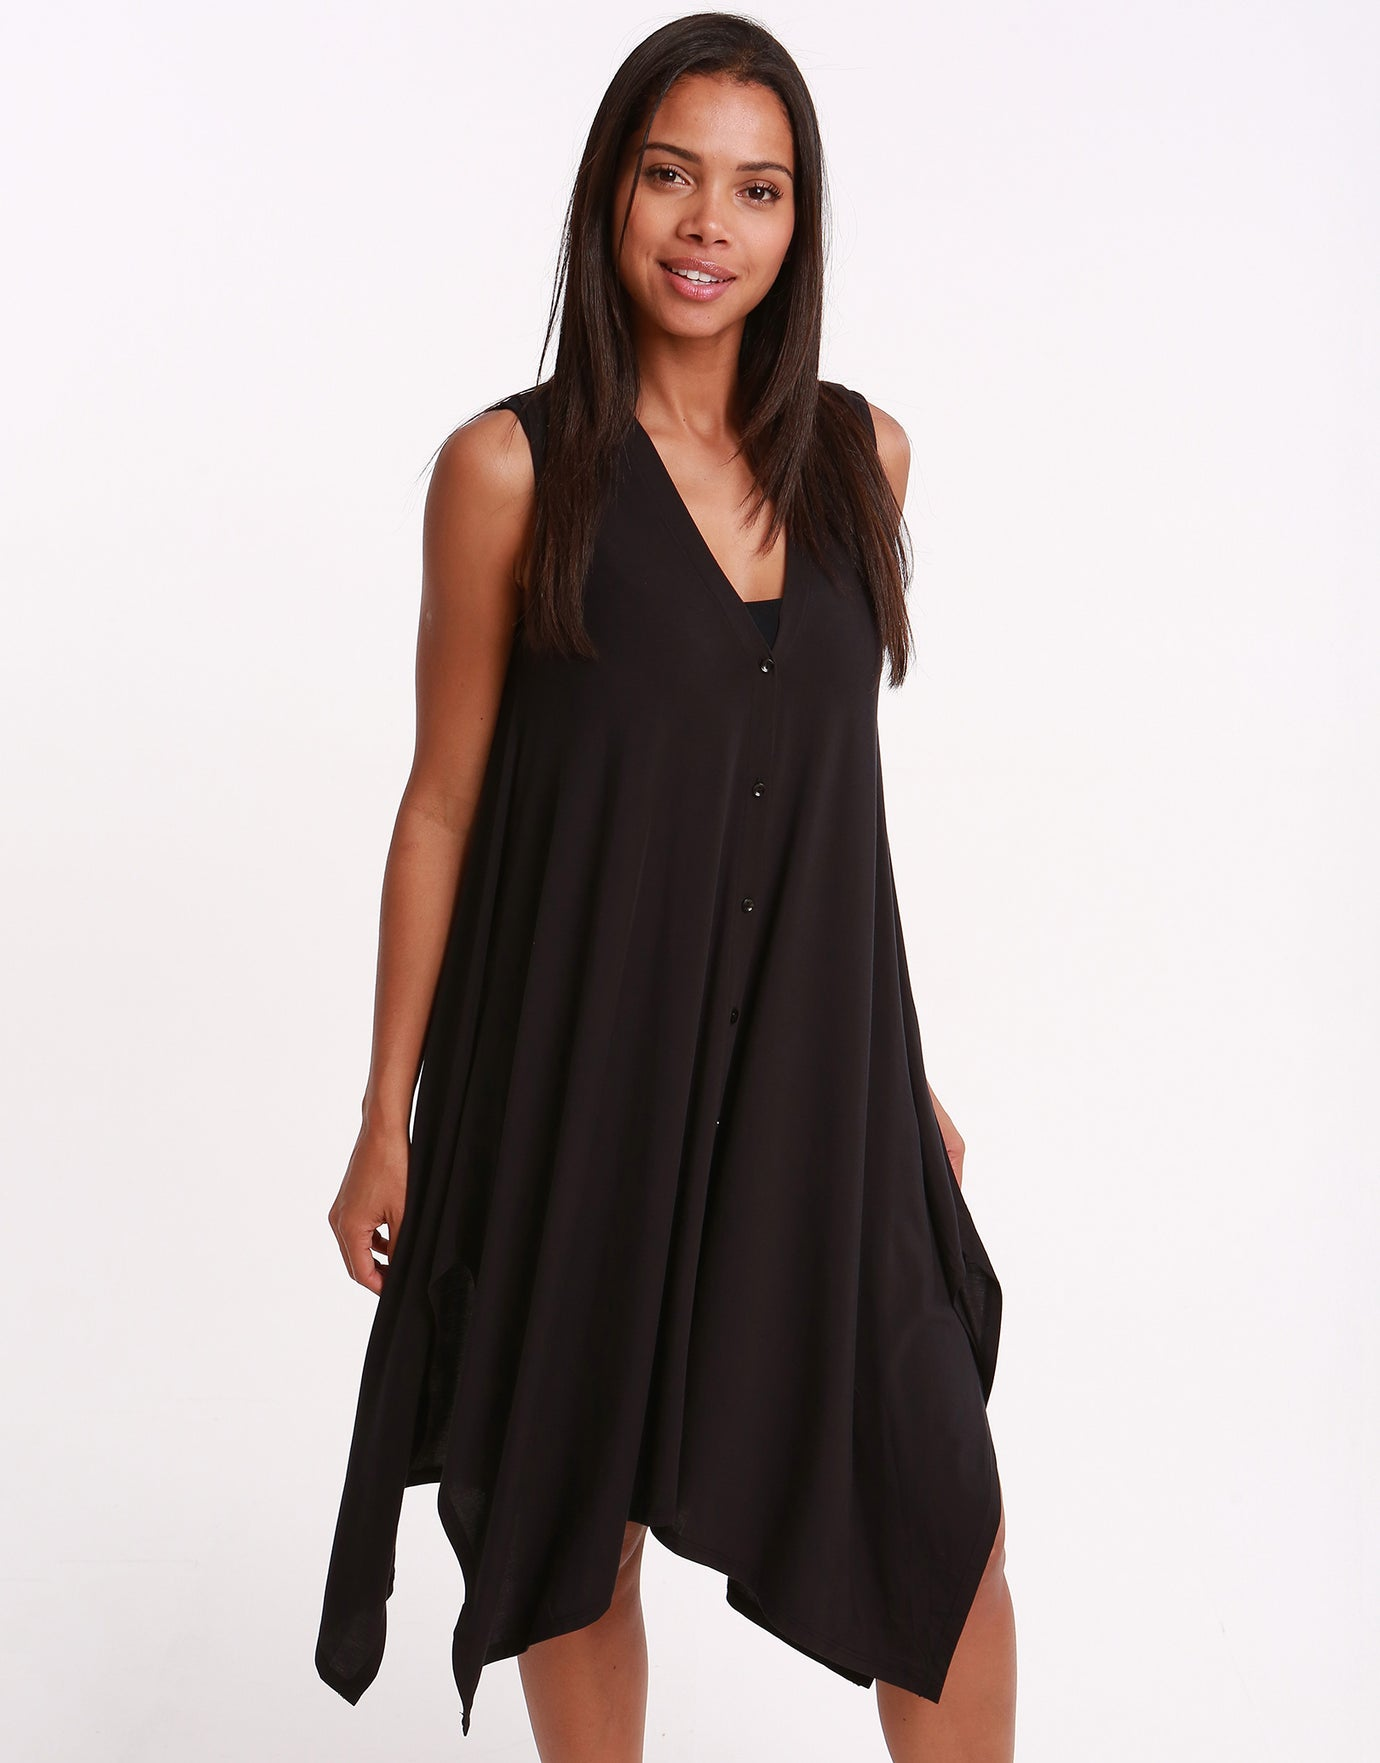 Gottex Profile Bel Air Jersey Dress - Black